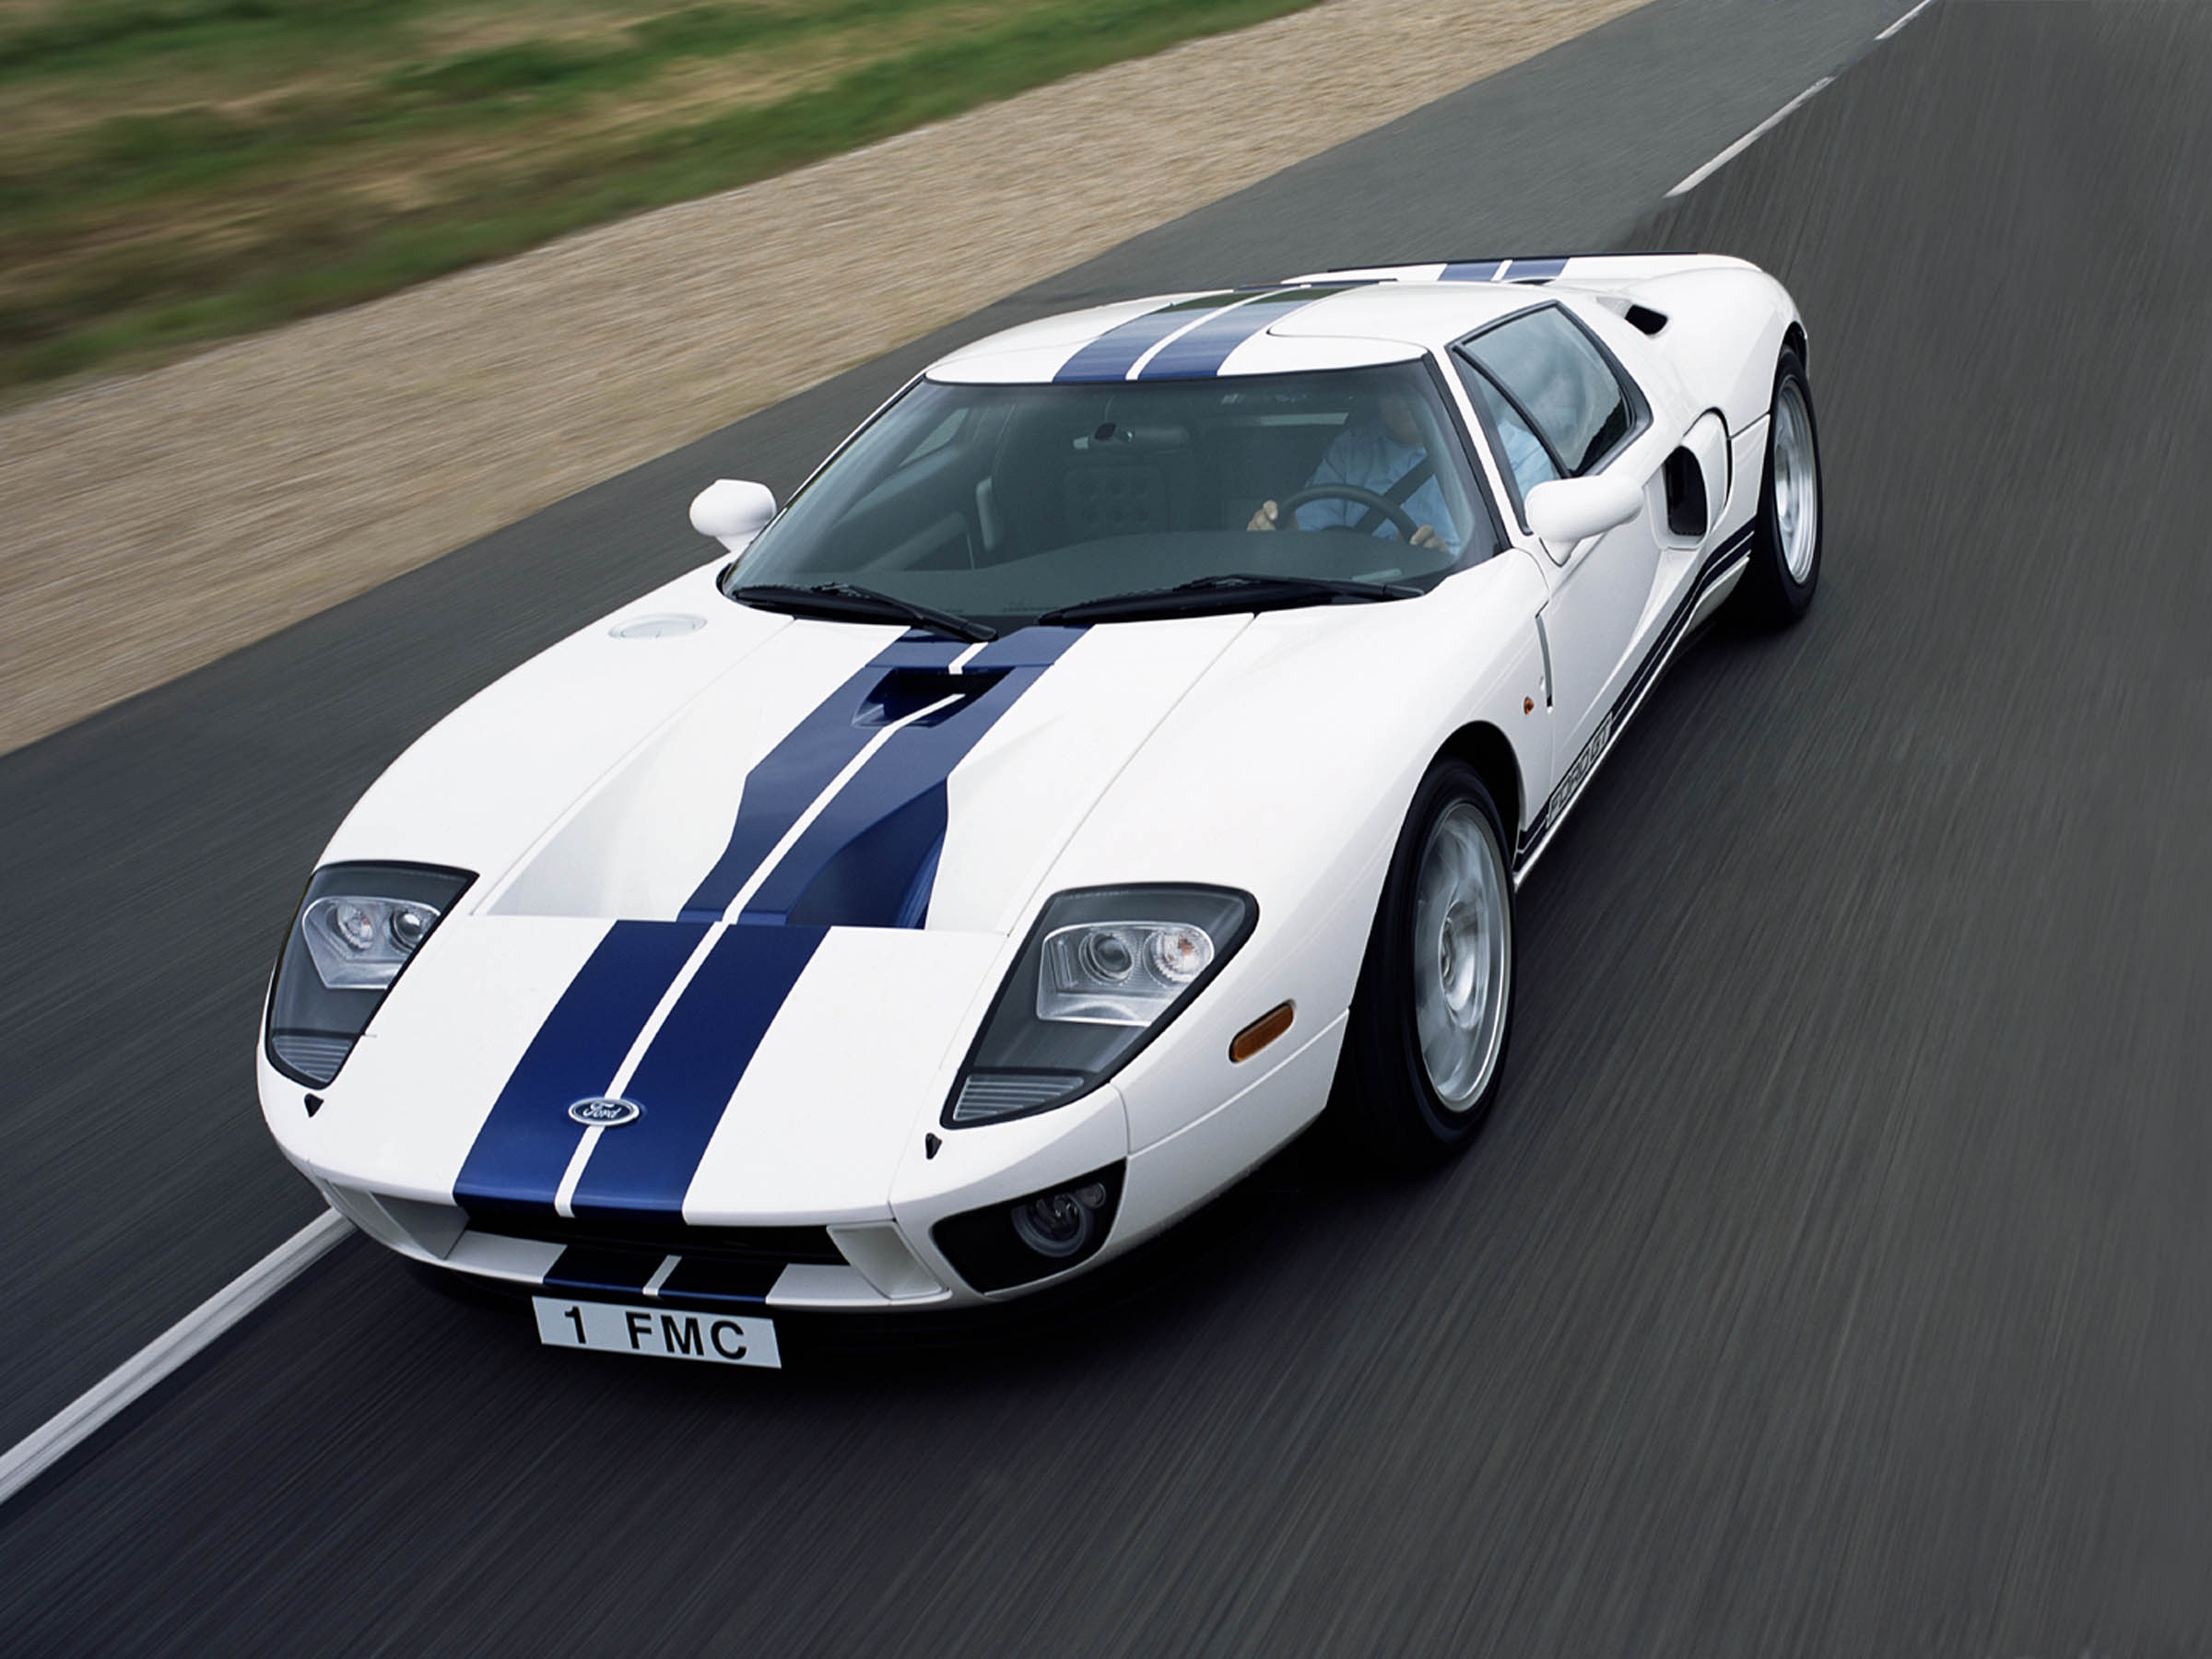 The Ford GT took on the spirit of the original GT40